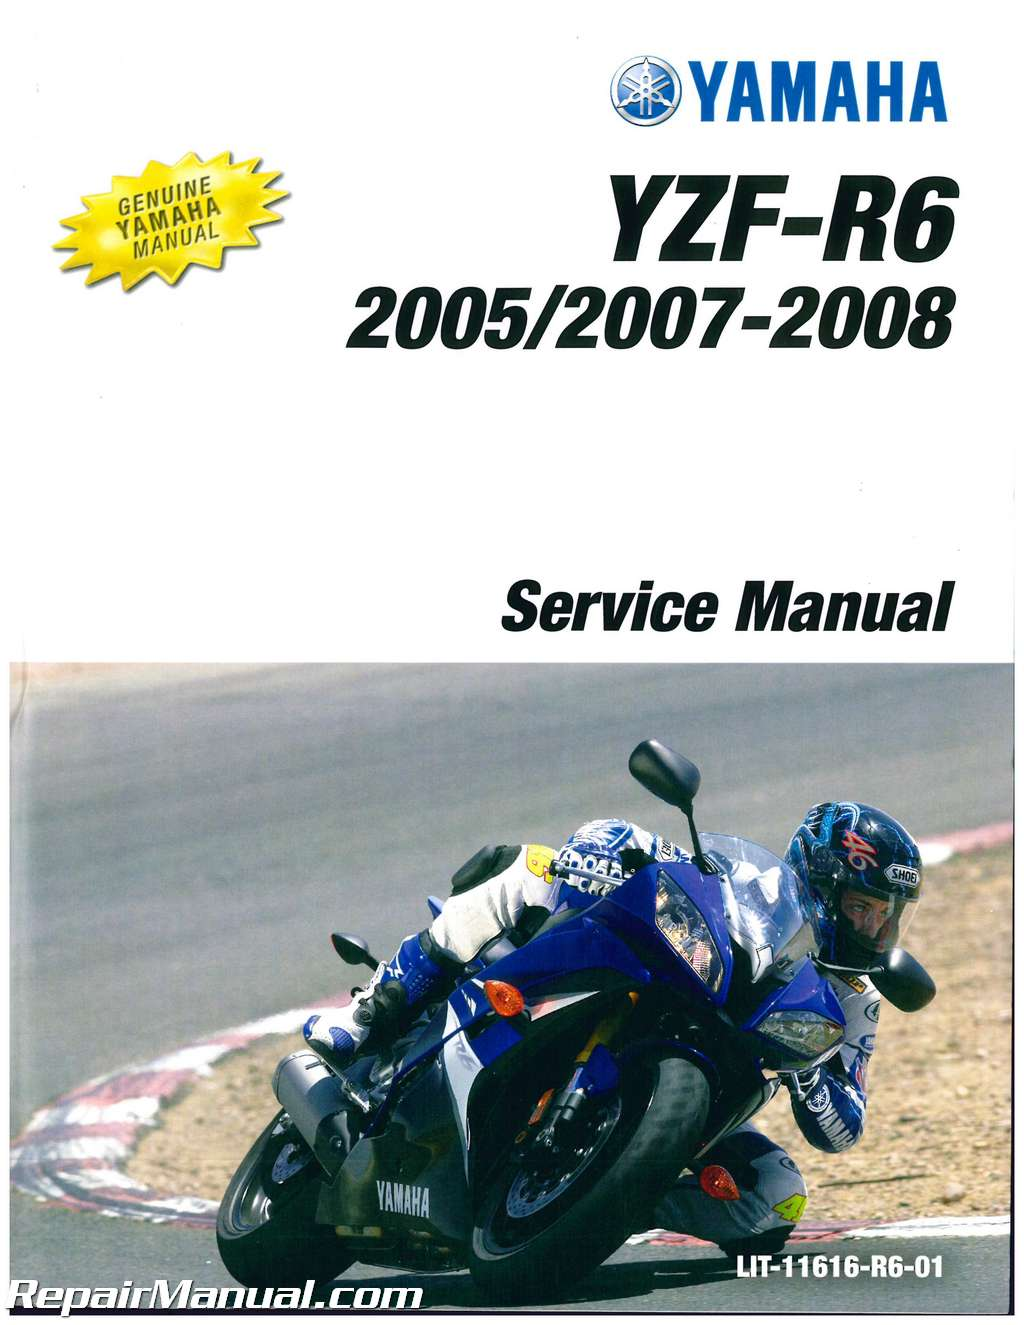 2003 2005 yamaha yzf r6 and 2006 2009 yzf r6s service manual lit rh ebay com 2008 yzf r6s owners manual 2008 yamaha r6 owner's manual pdf